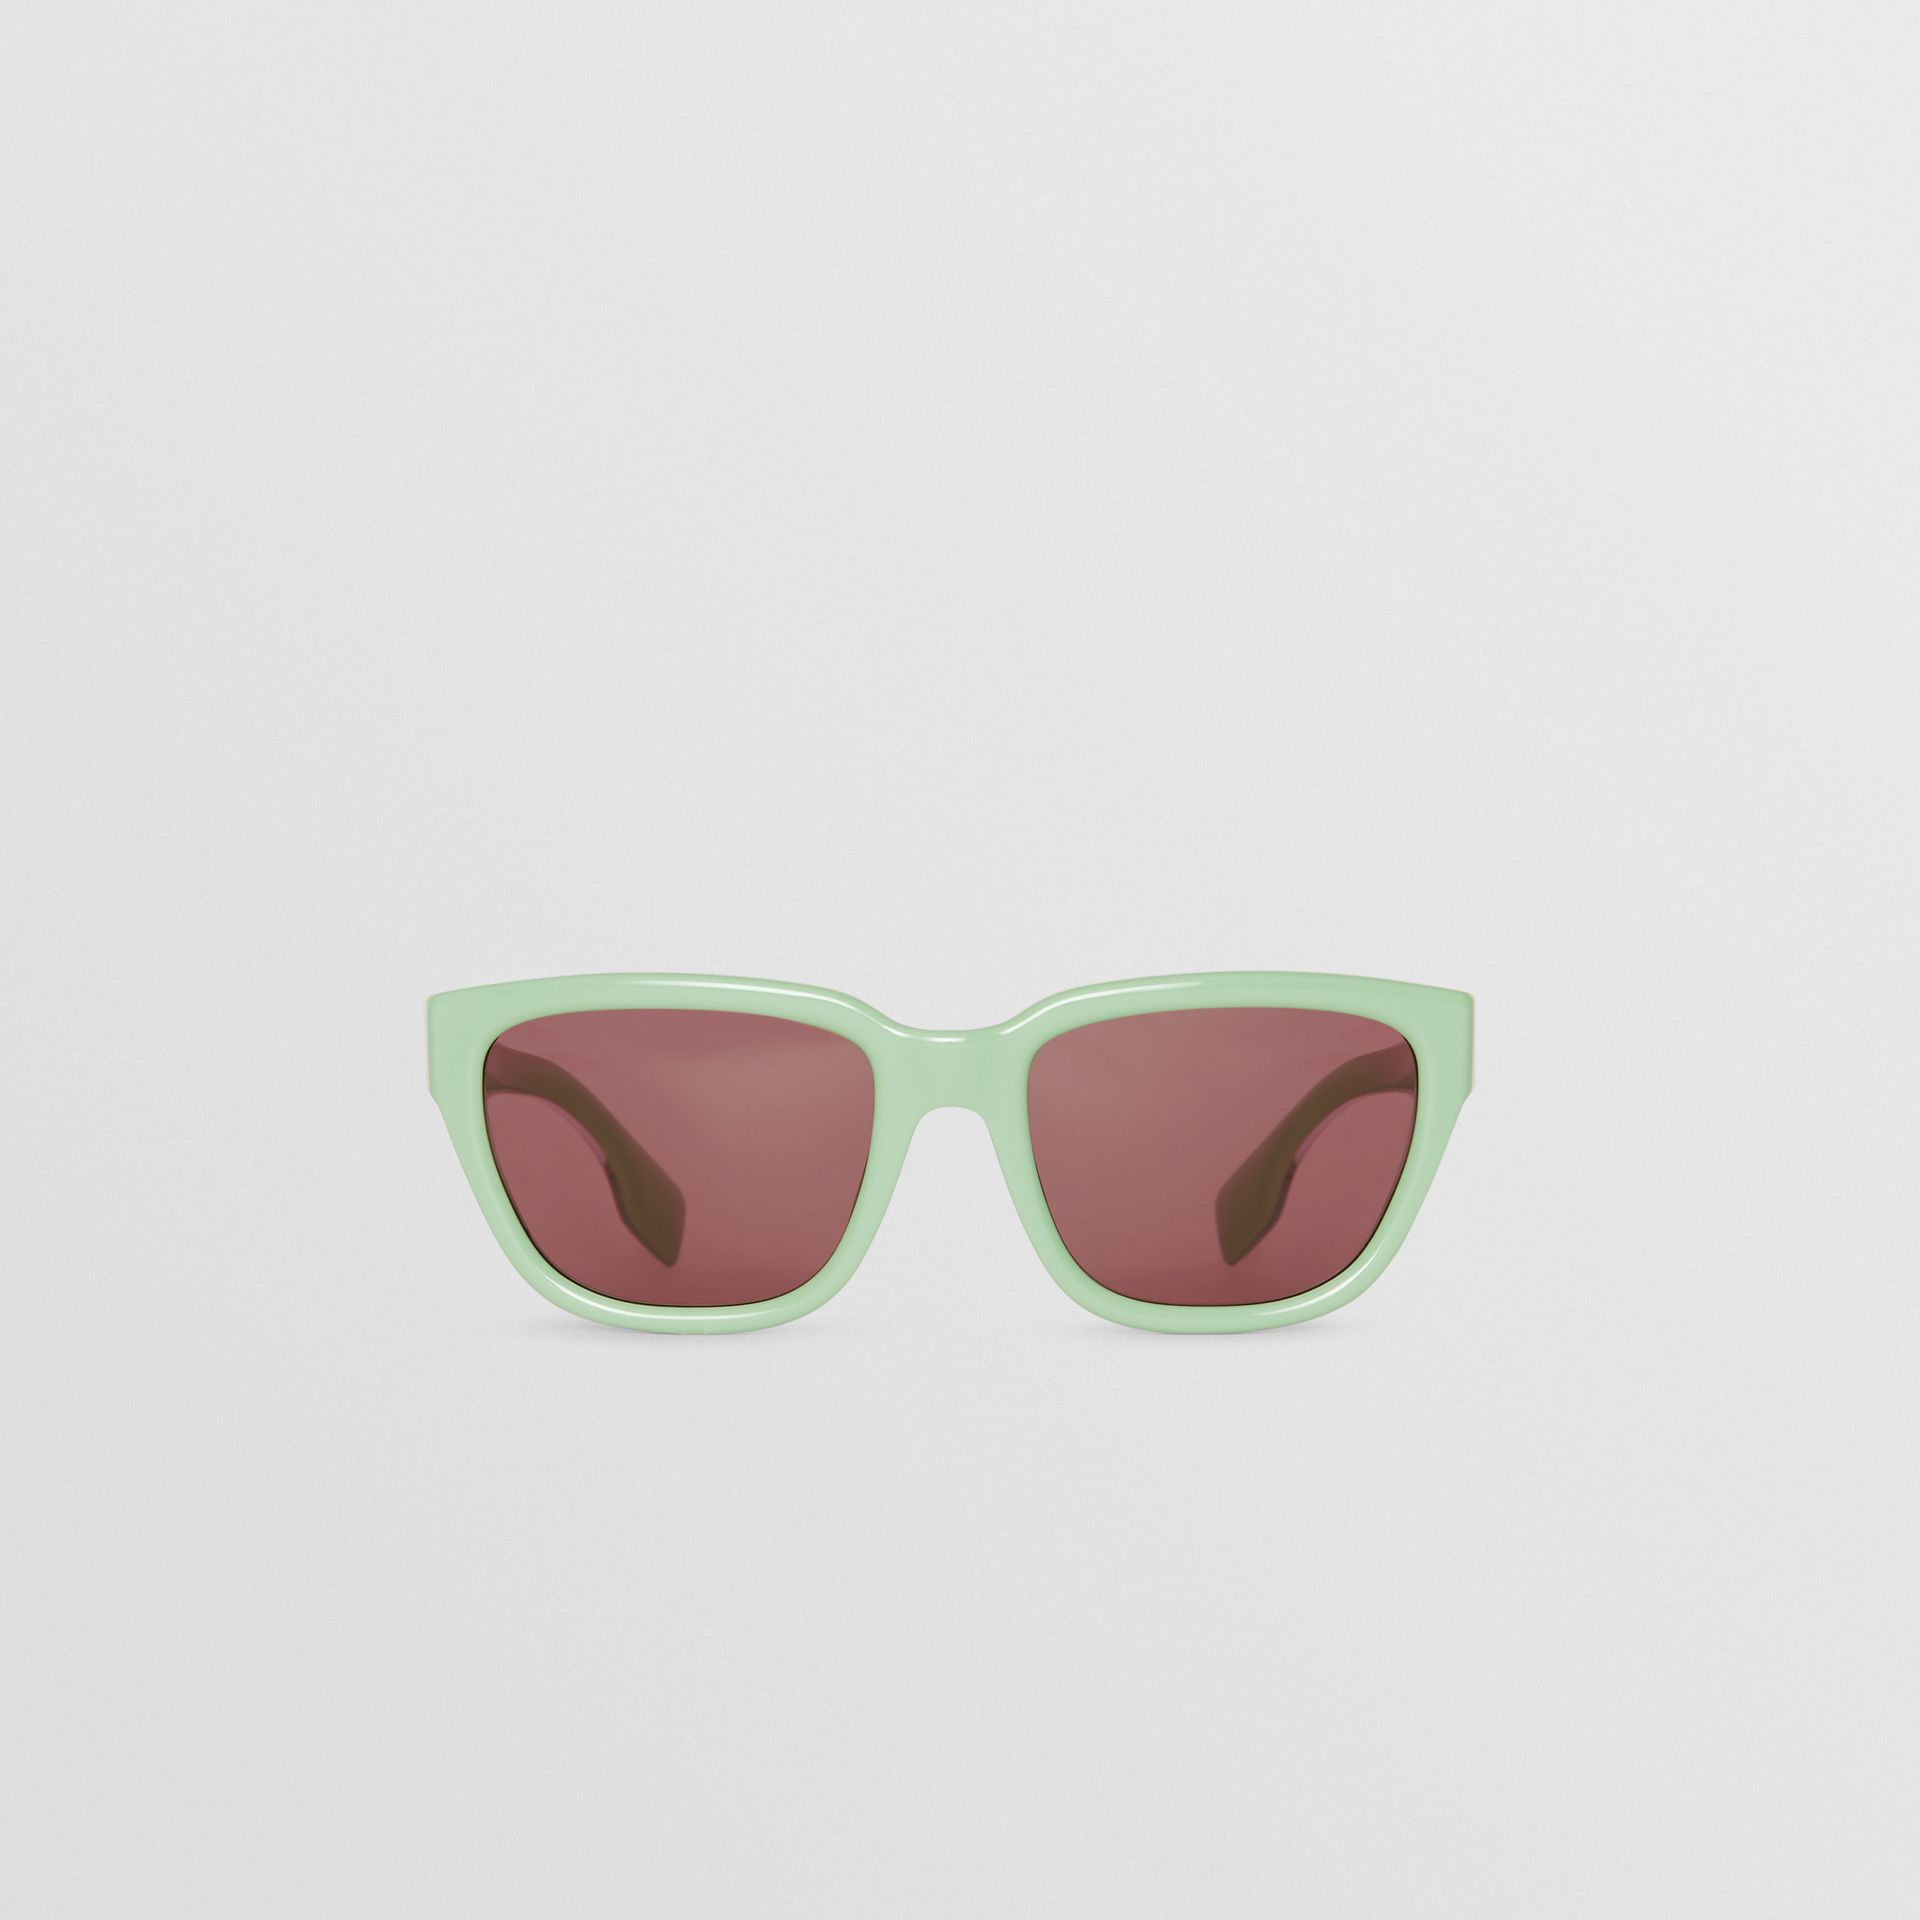 Square Frame Sunglasses in Mint Green - Women | Burberry - gallery image 0